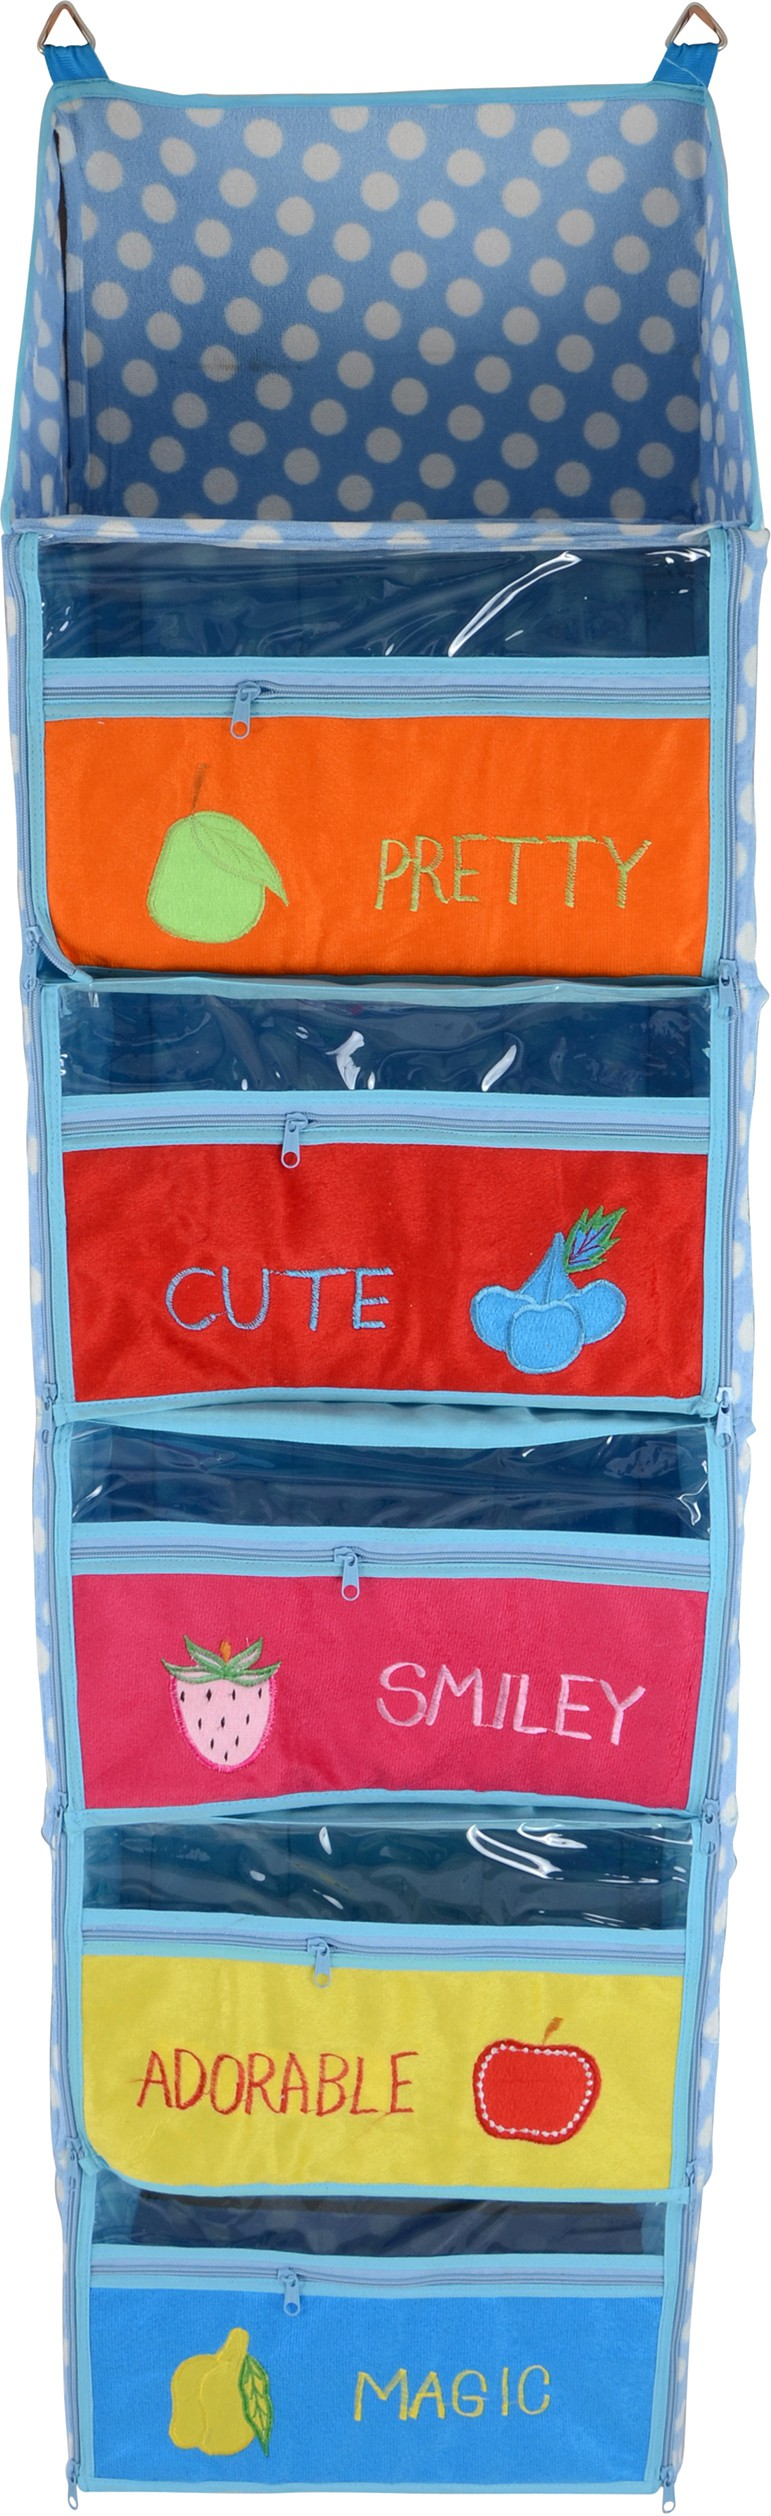 View Baby Grow Cotton Collapsible Wardrobe(Finish Color - Blue) Furniture (Baby Grow)